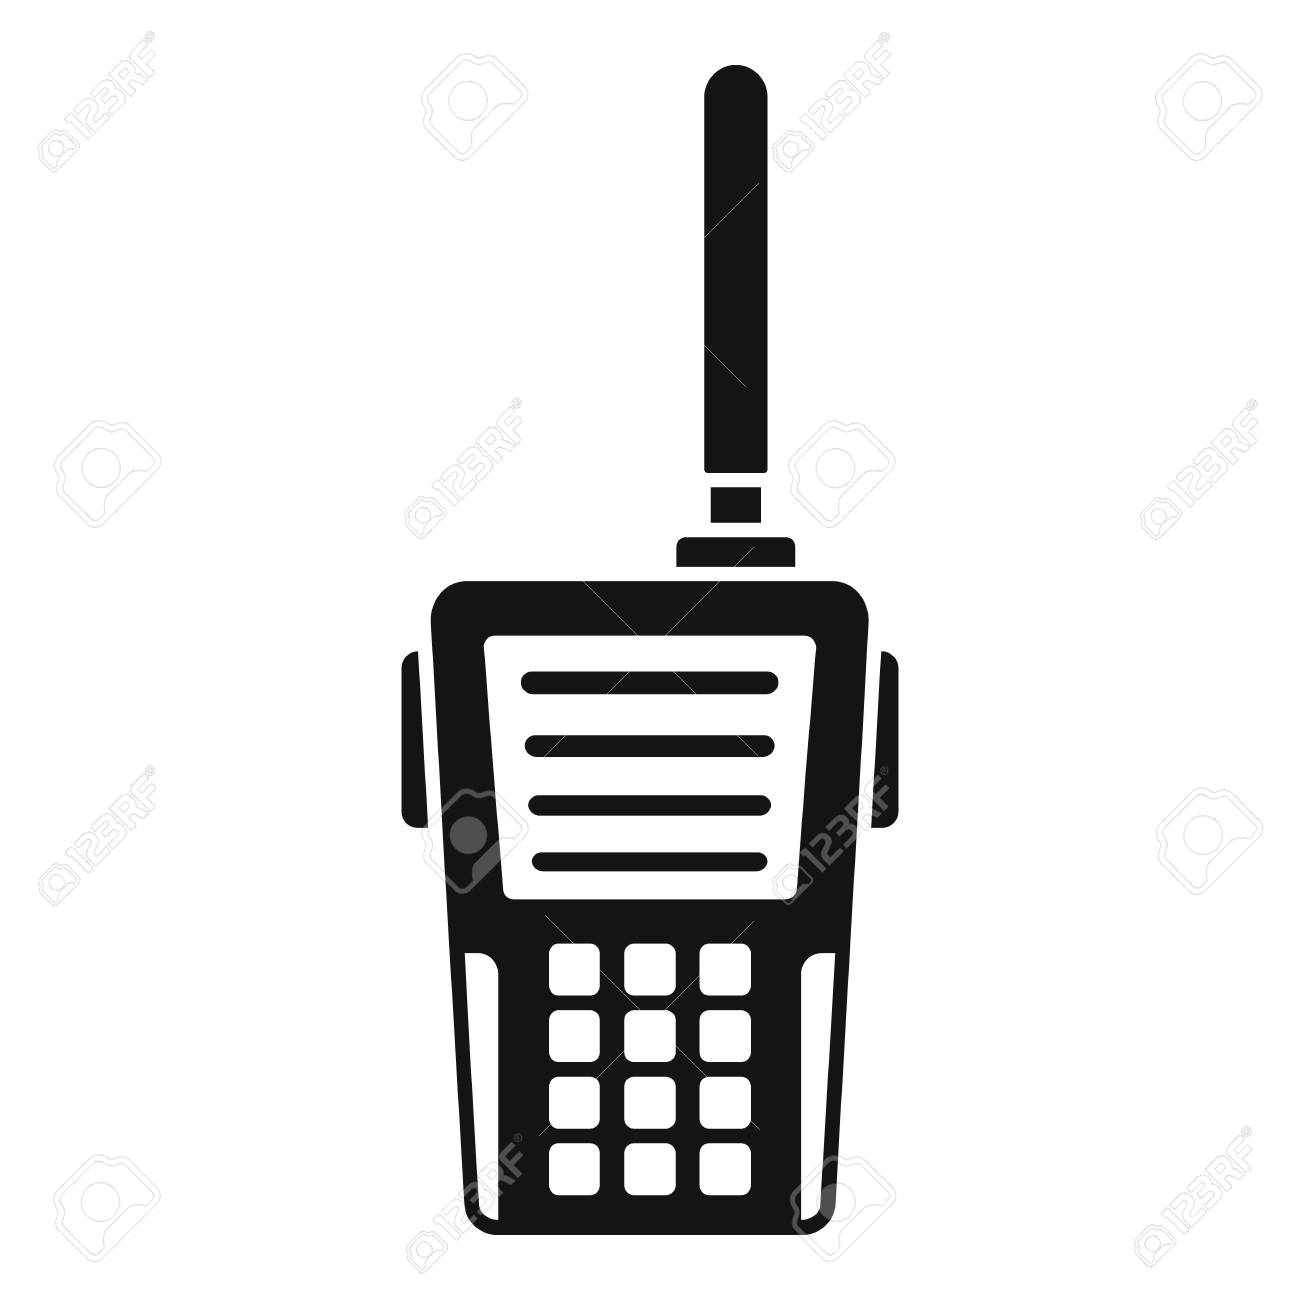 Walkie talkie icon. Simple illustration of walkie talkie vector icon for web design isolated on white background - 112920237